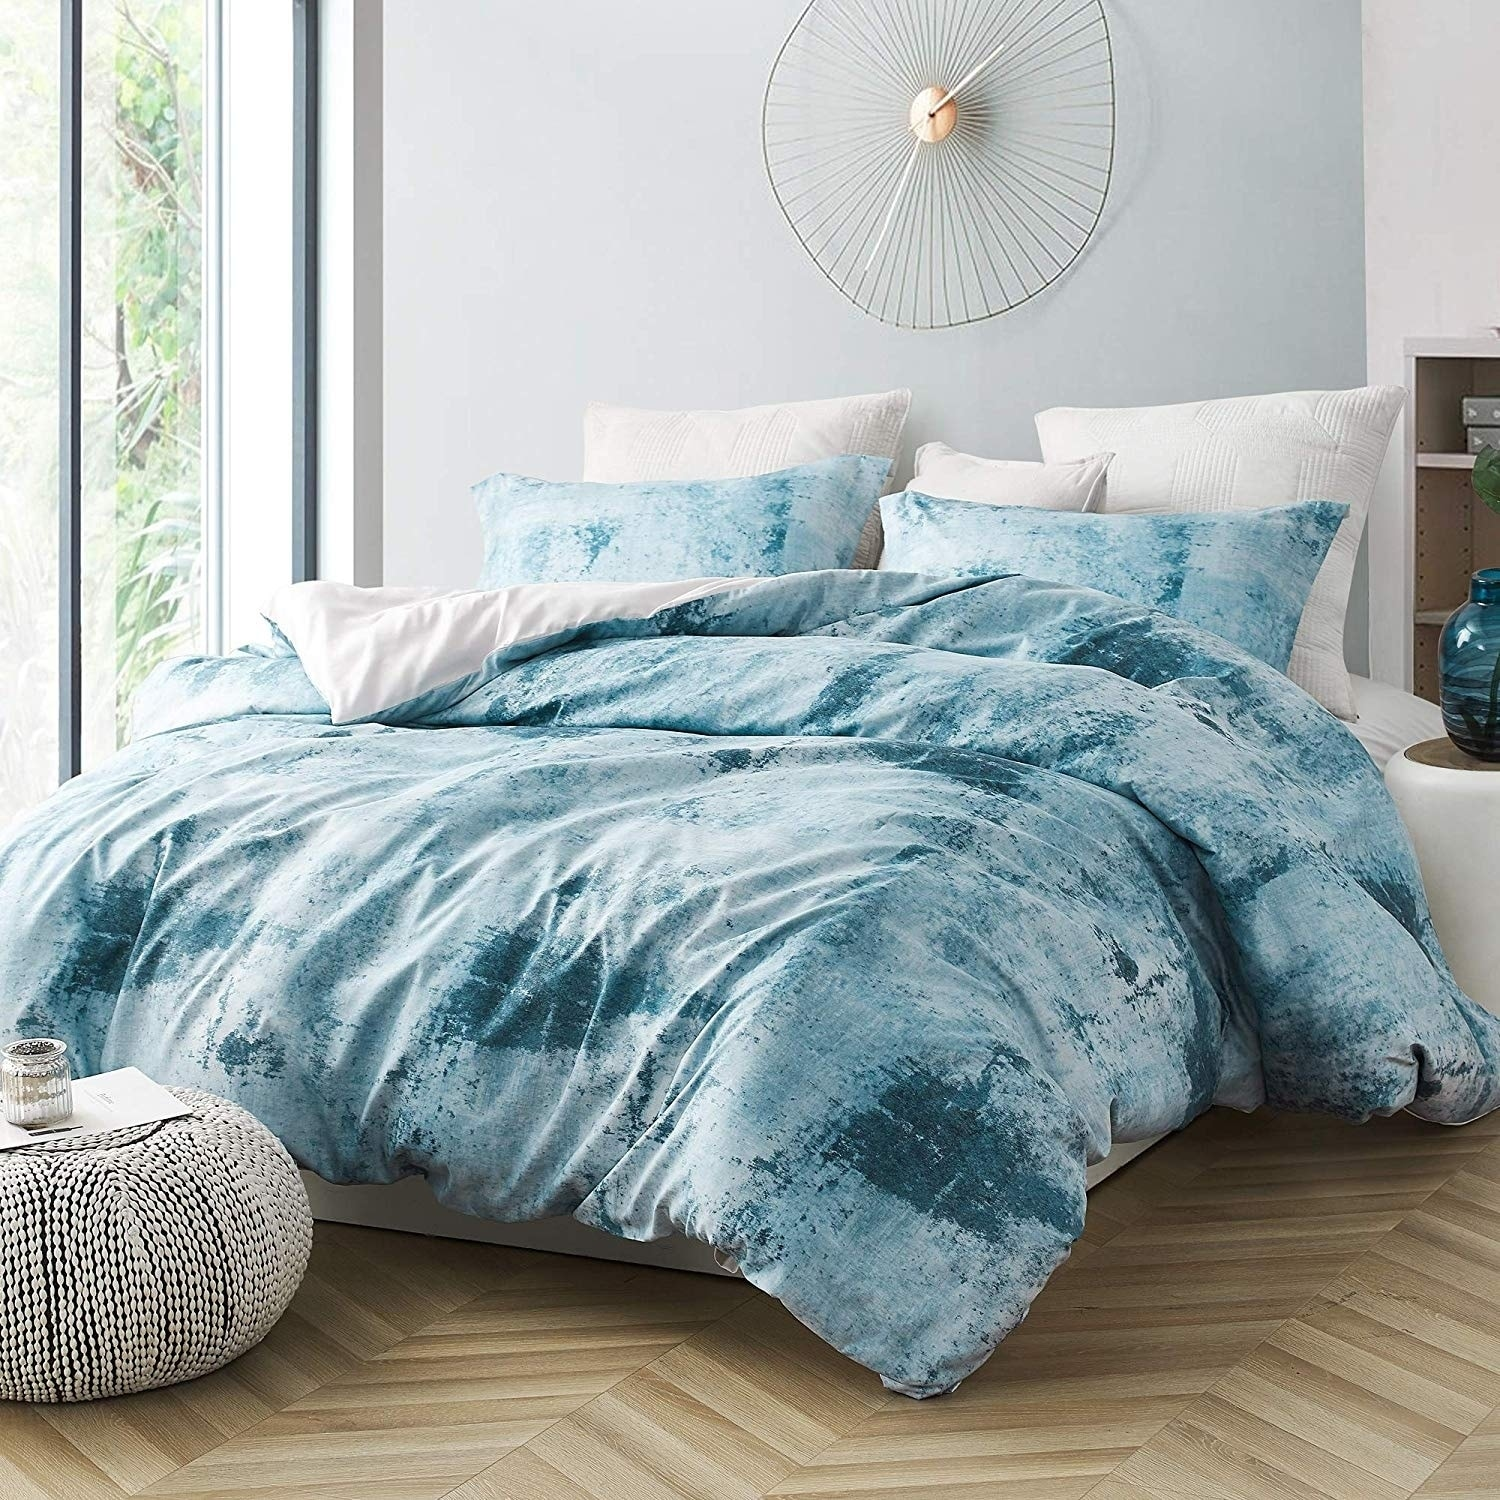 Brucht Designer Supersoft Oversized Duvet Cover Moonrise Blue Gray Overstock 28735691